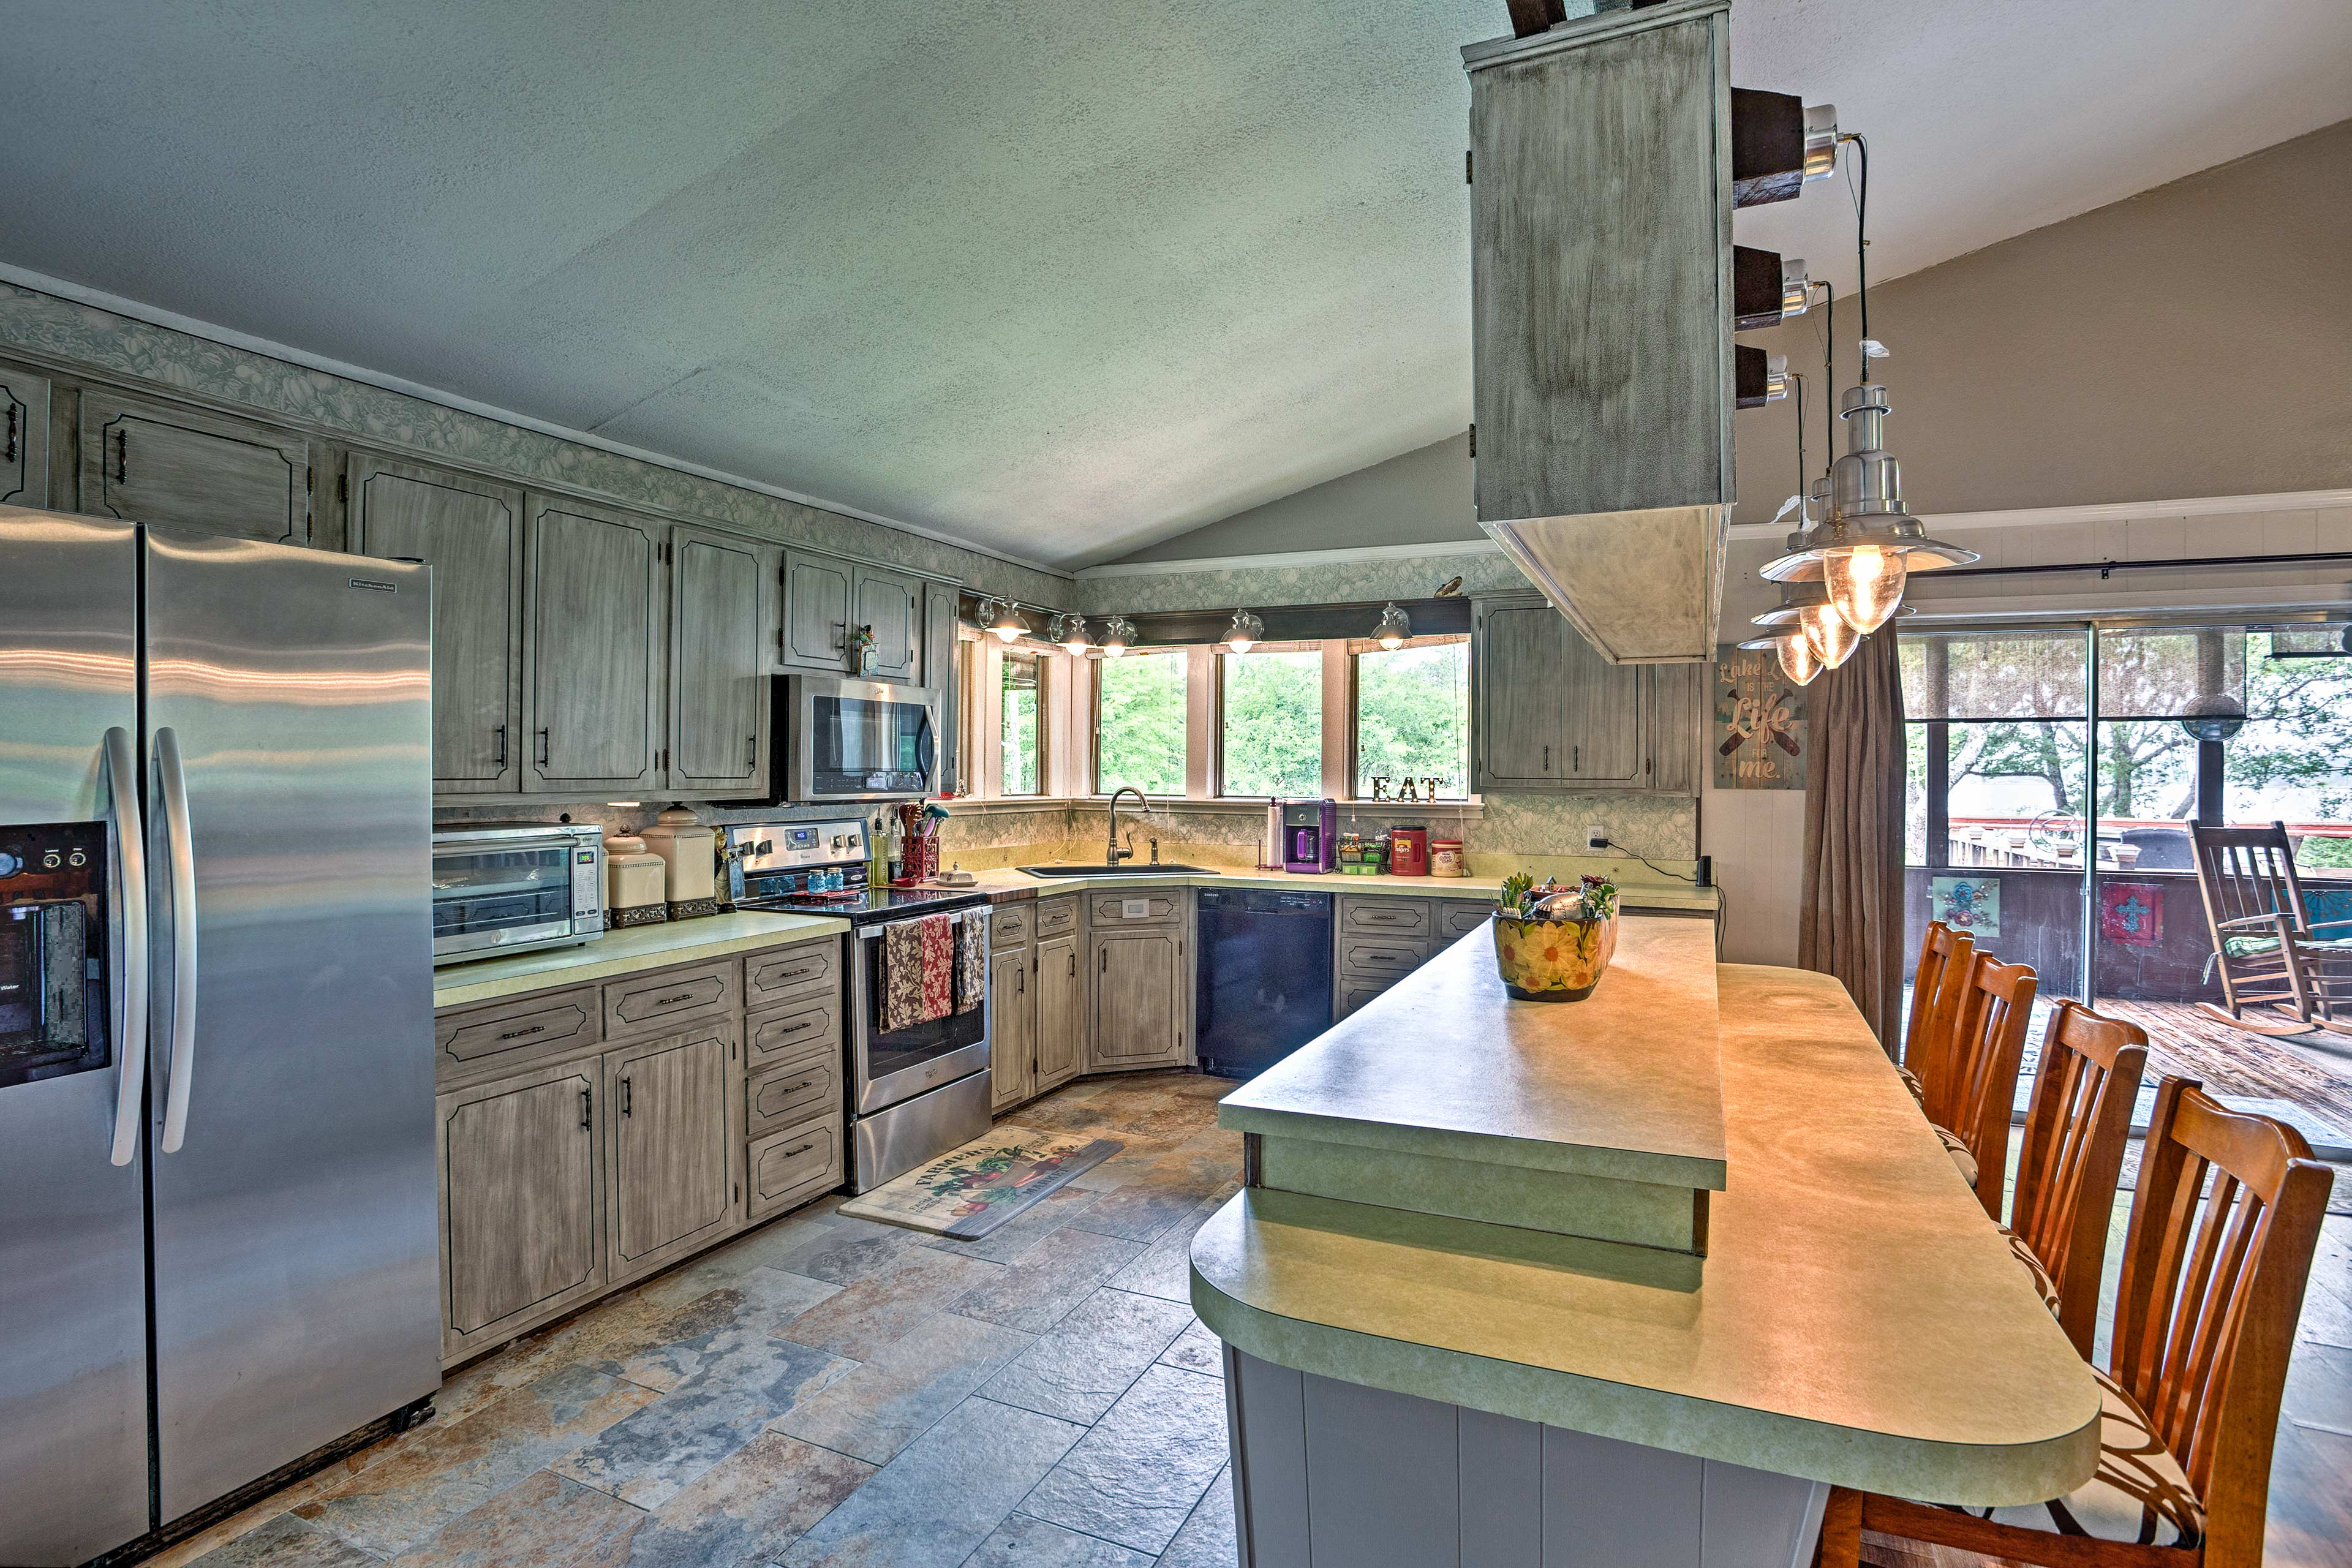 Beautifully stained cabinets complement the gleaming stainless steel appliances.